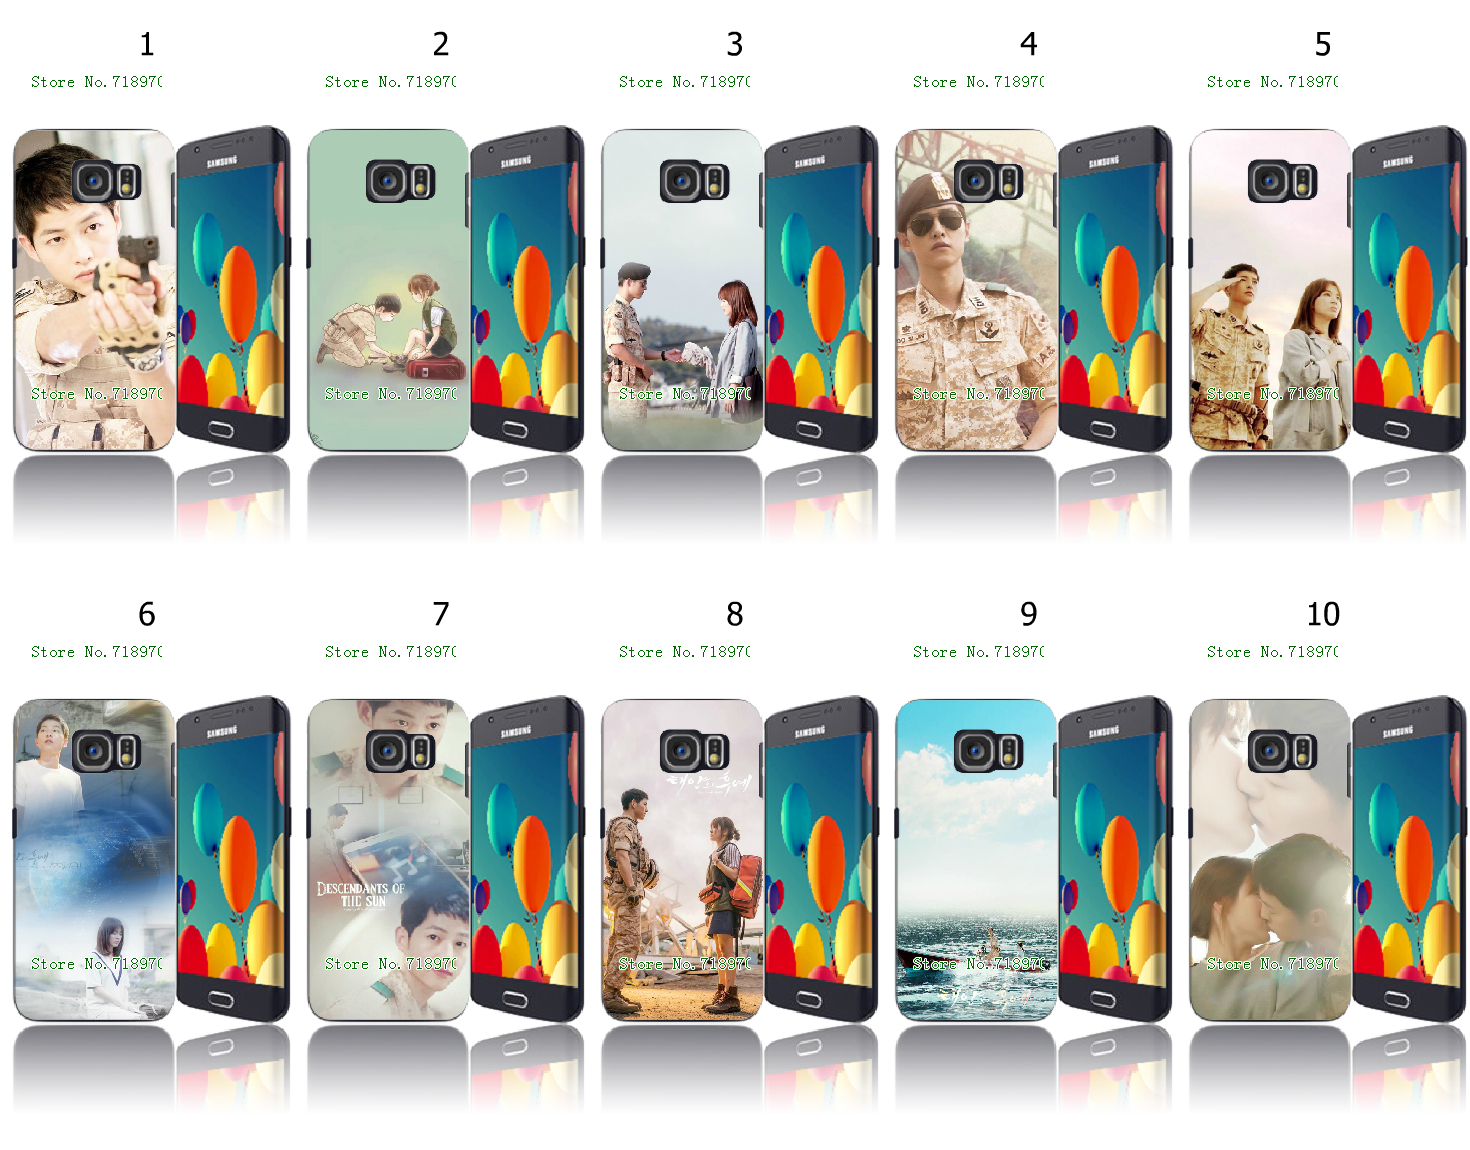 New Ultra Slim The descendants of the sun Plastic Mobile Phone Cases for Samsung Galaxy S6 Edge Plus(China (Mainland))